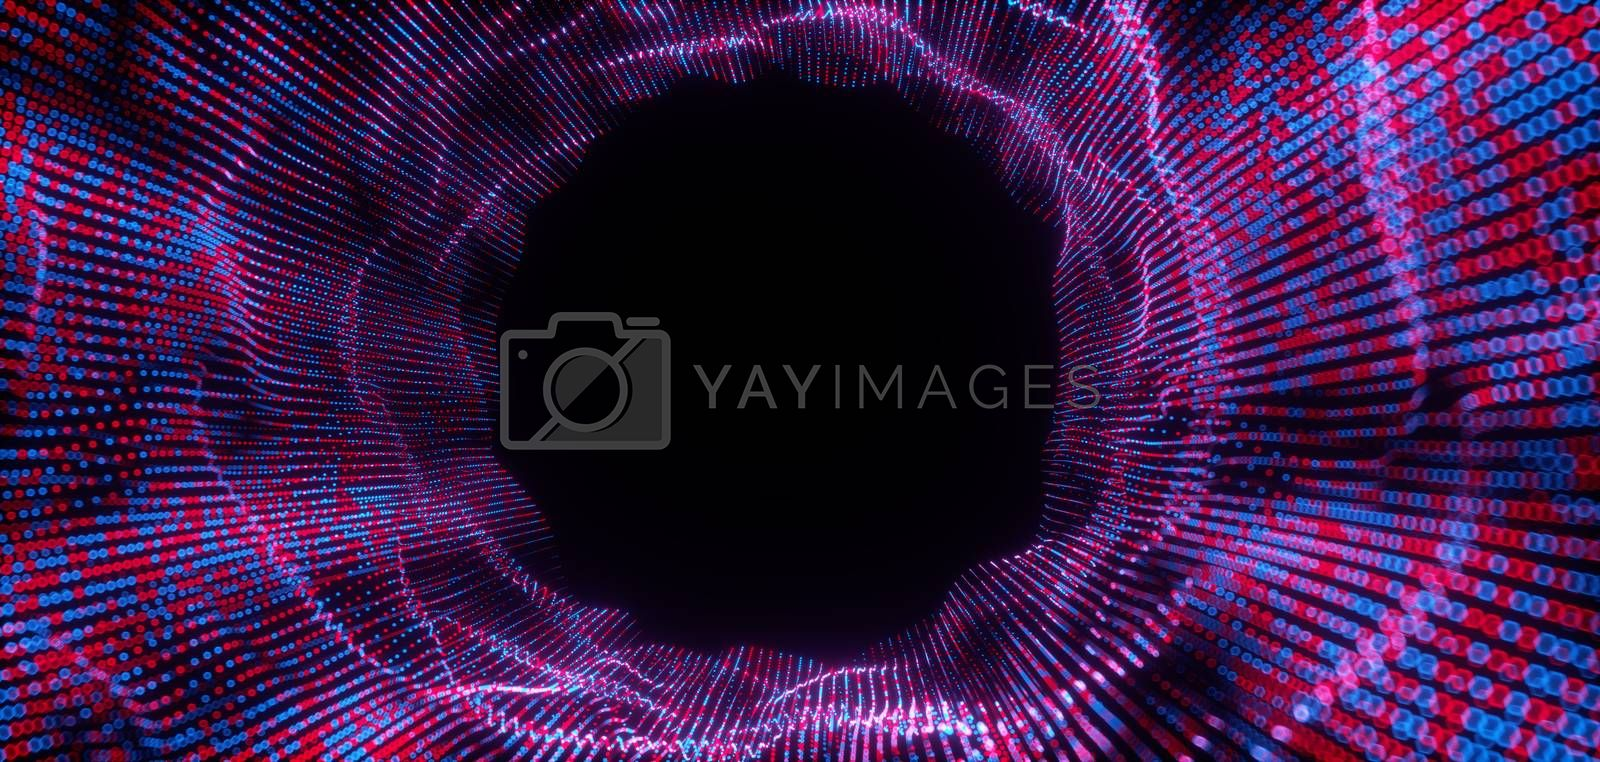 Abstract big data futuristic light wallpaper background design. Science dark pattern with structure mesh and circles. Modern business space dots illustration with bokeh. 3D render by Shanvood